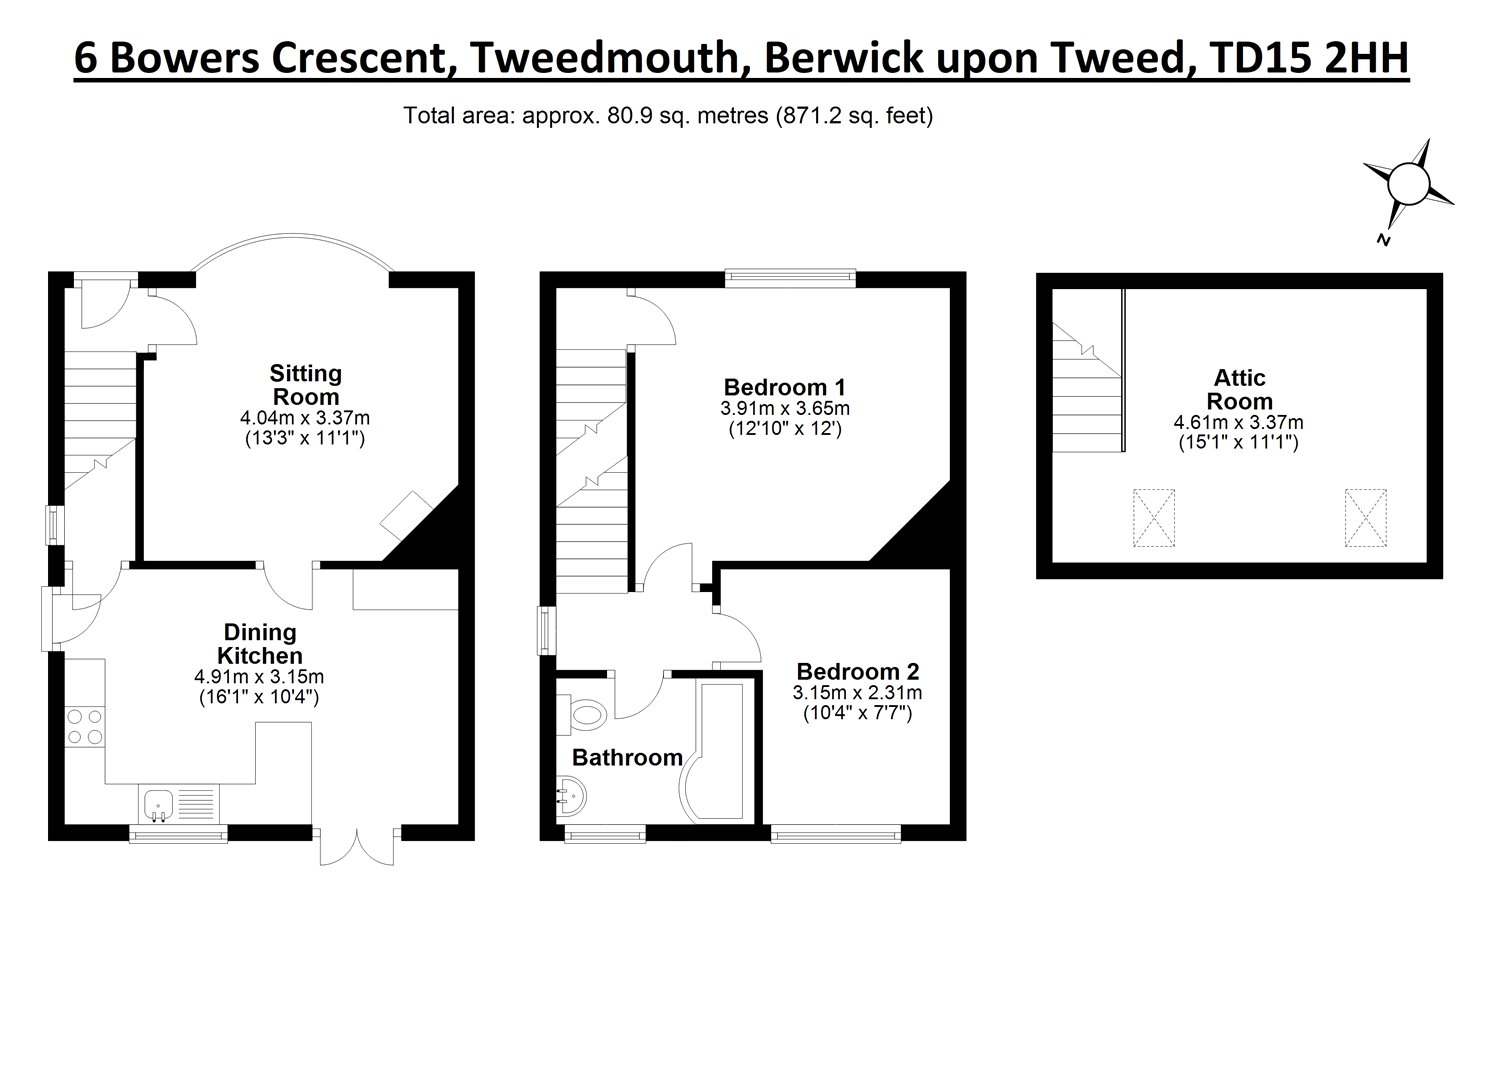 Floorplans for Bower's Crescent, Berwick-upon-Tweed, Northumberland, TD15